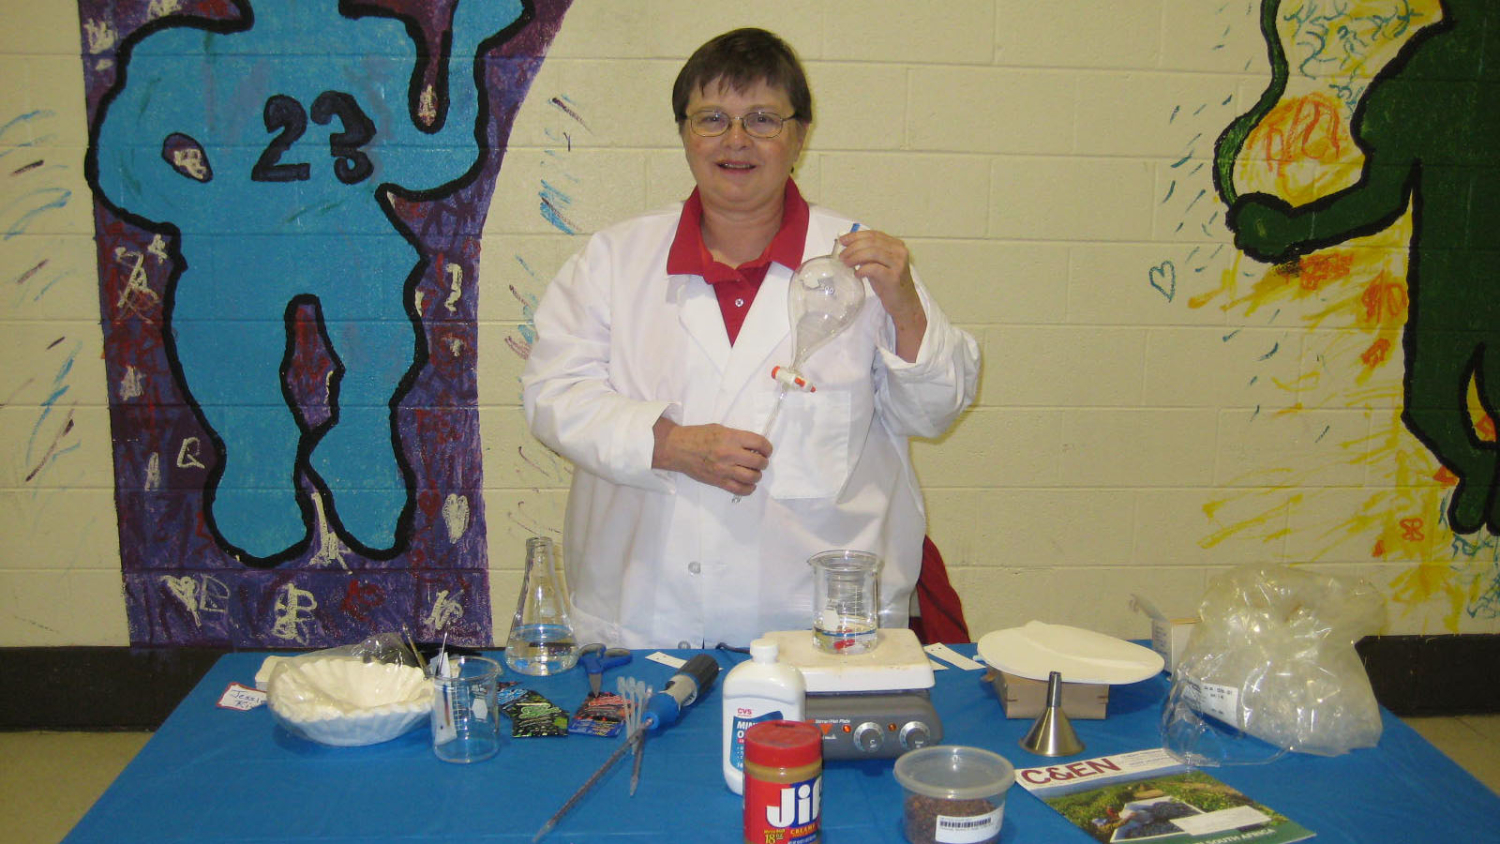 Jessie Rivers stands behind a table at a school career fair, conducting an experiment.